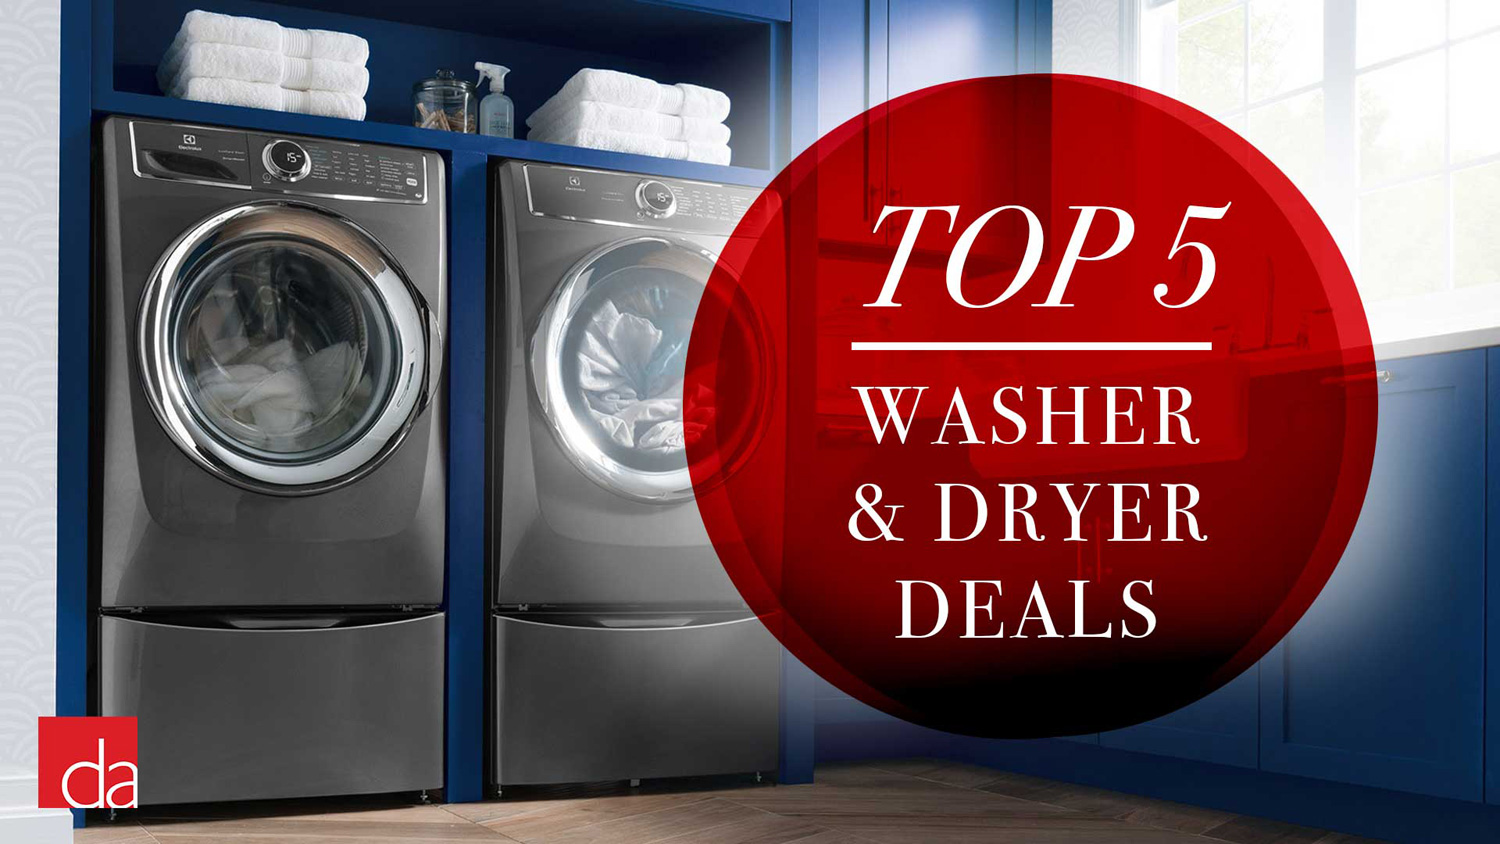 Best Top Loading Washing Machine 2020.Best Washer And Dryer Deals Of 2019 Our Top 7 Picks